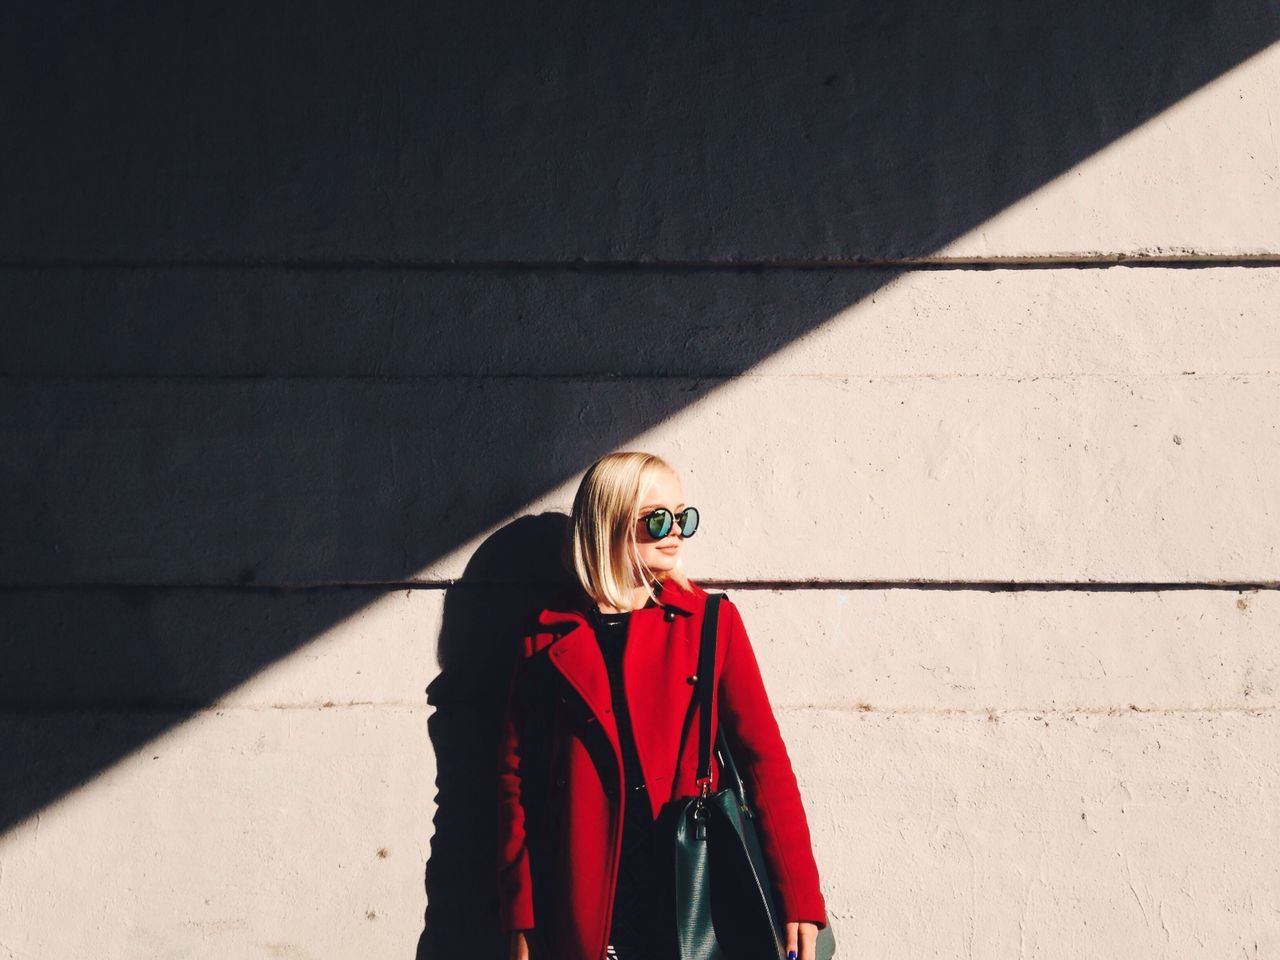 Outfit of the day Lifestyles Sunlight Real People Shadow Sunglasses One Person Beautiful Woman Clothes Portrait Beautiful Young Women Blonde